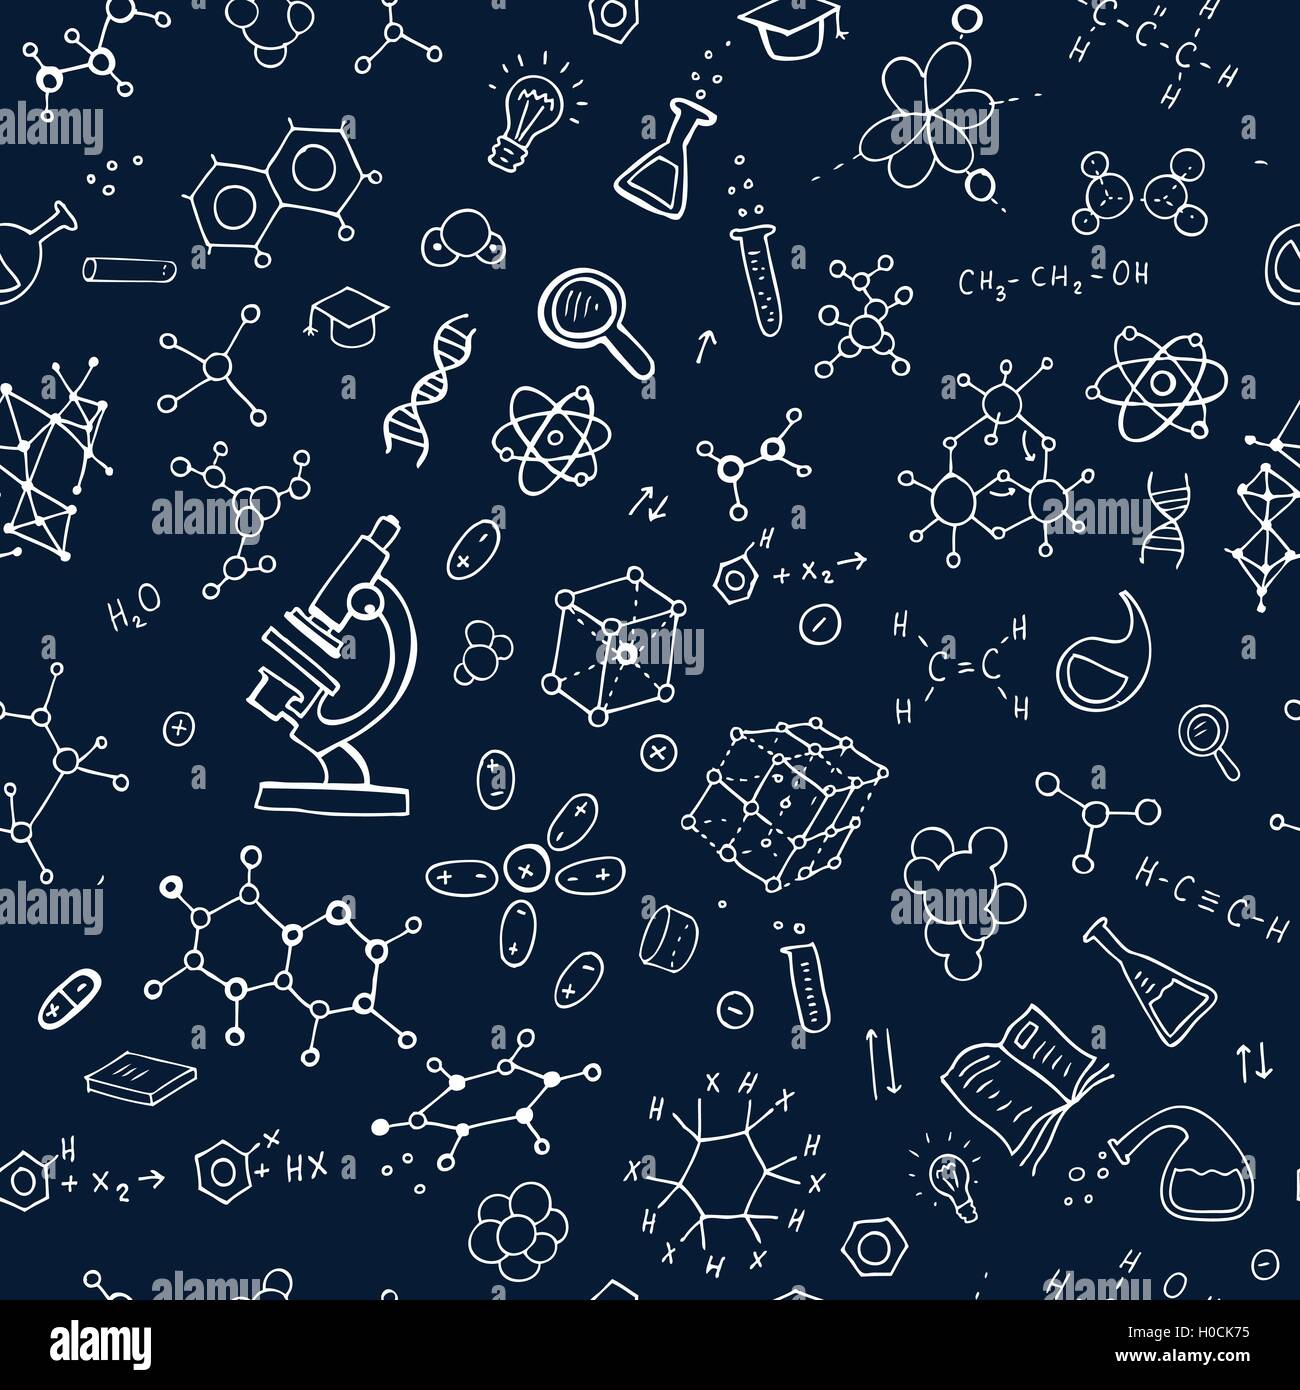 Seamless chemistry background Stock Vector